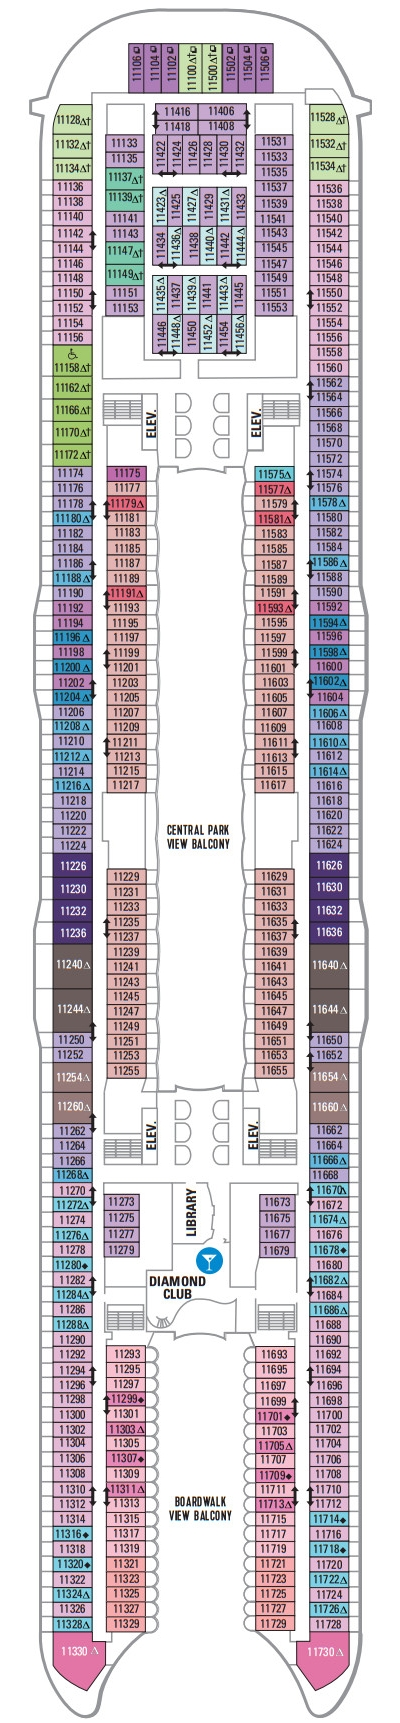 Allure Of The Seas Deck 11 layout